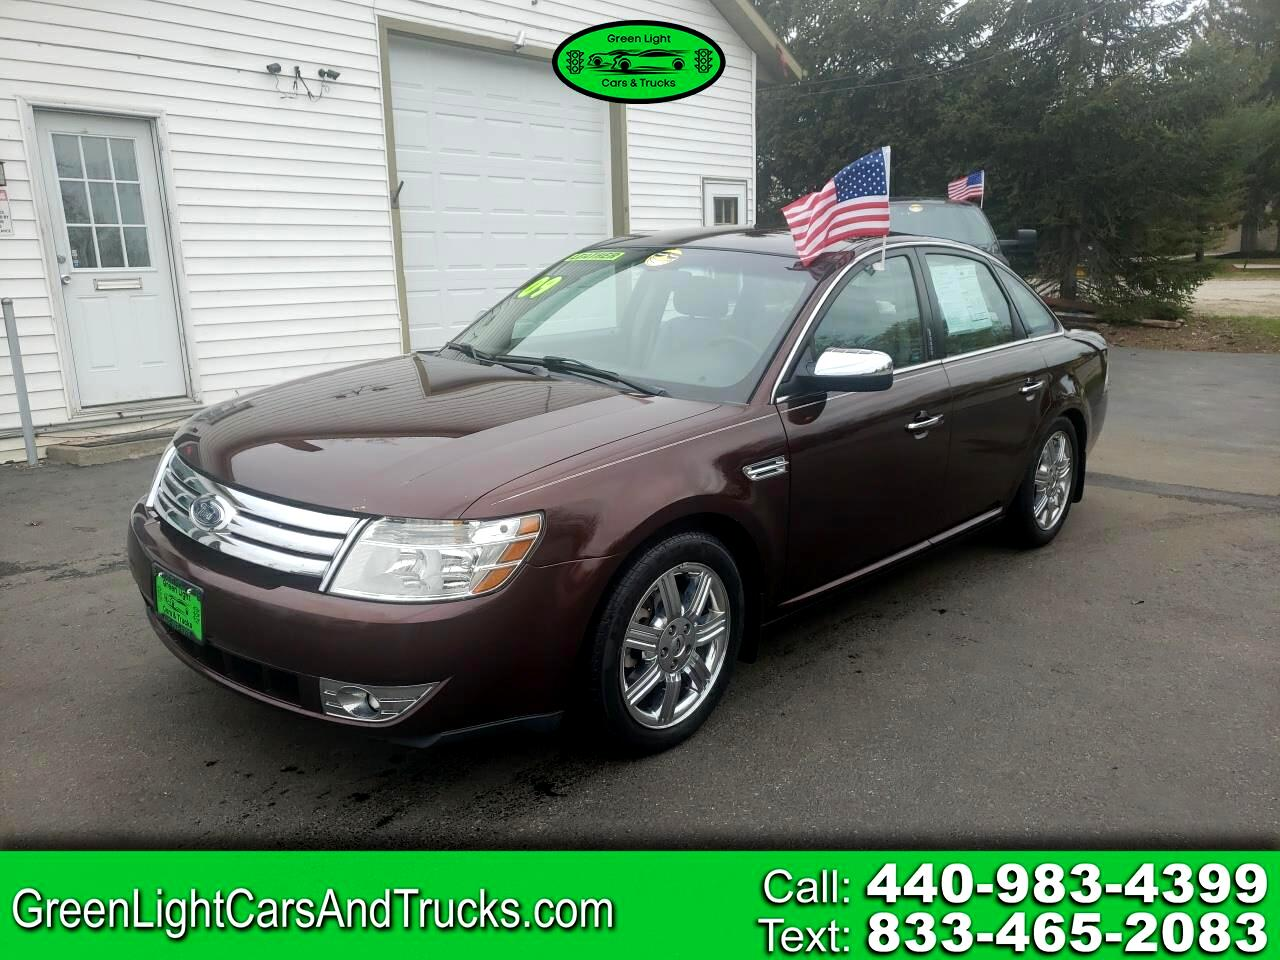 Ford Taurus 4dr Sdn Limited FWD 2009